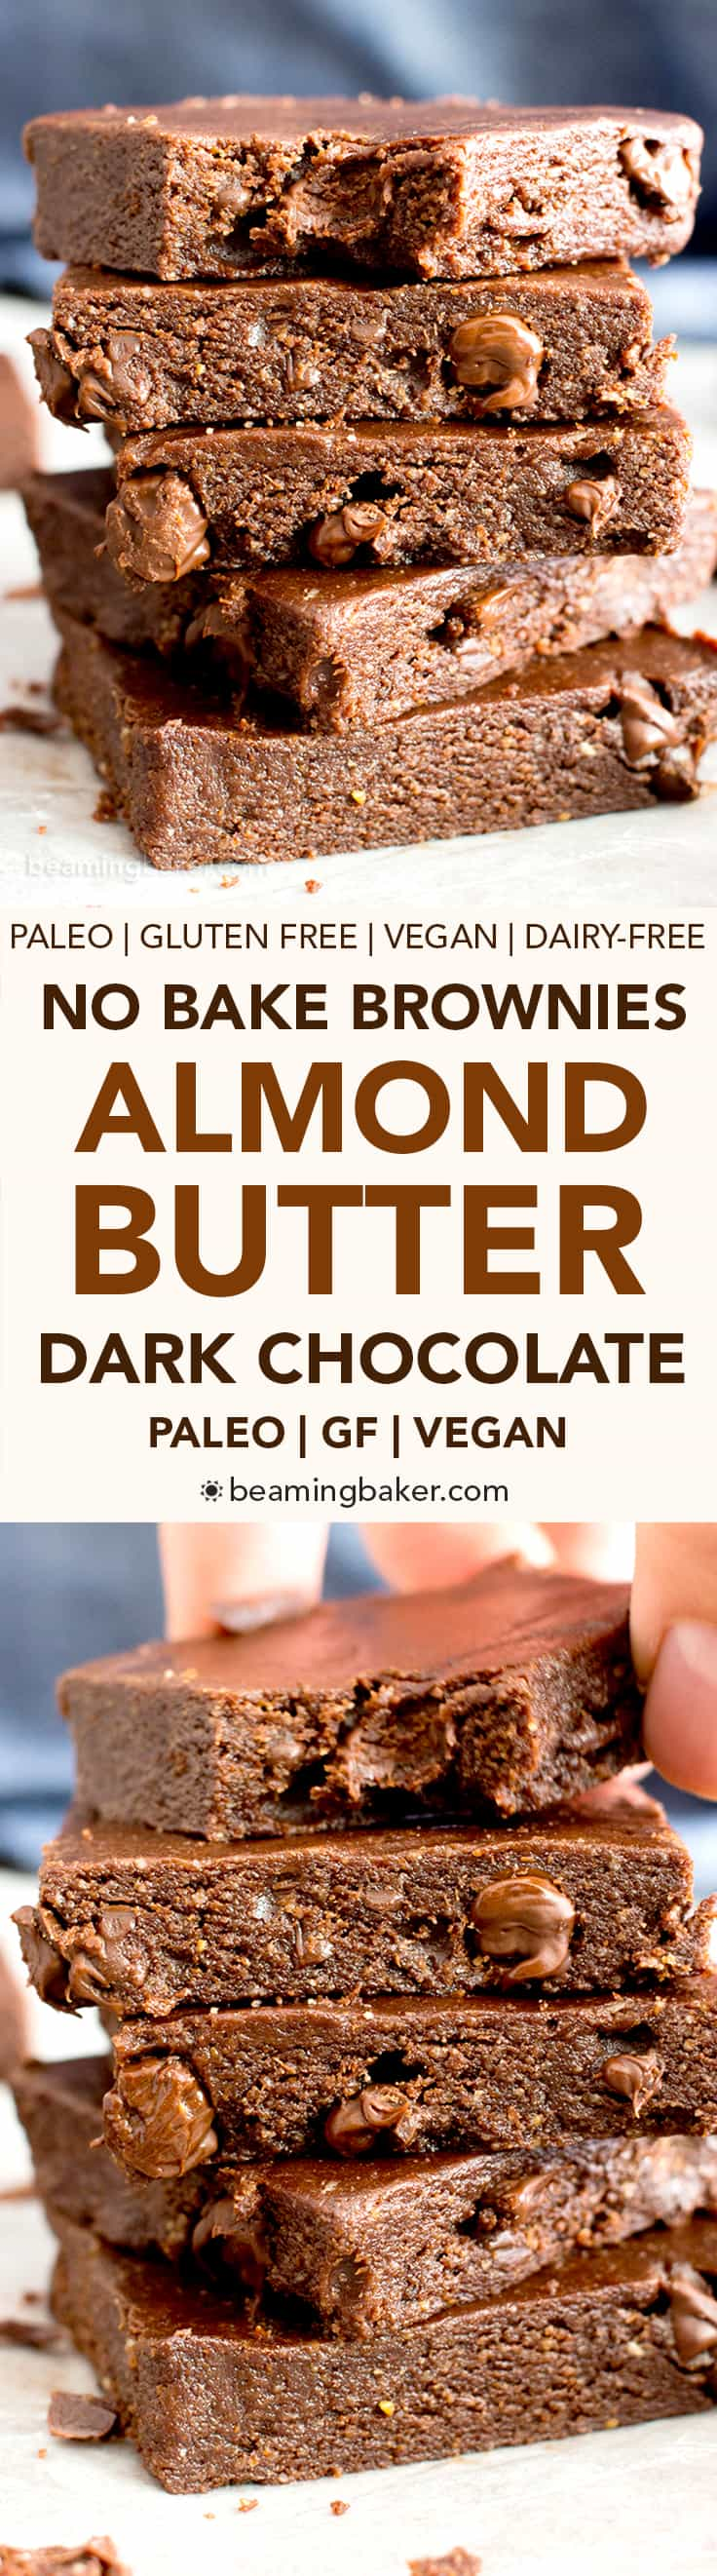 No Bake Dark Chocolate Almond Butter Paleo Brownies (V, GF): a 6-ingredient recipe for luxuriously rich no bake brownies packed with chocolate chips and ready in minutes! #Vegan #Chocolate #GlutenFree #DairyFree #Paleo #Desserts #Healthy | Recipe on BeamingBaker.com